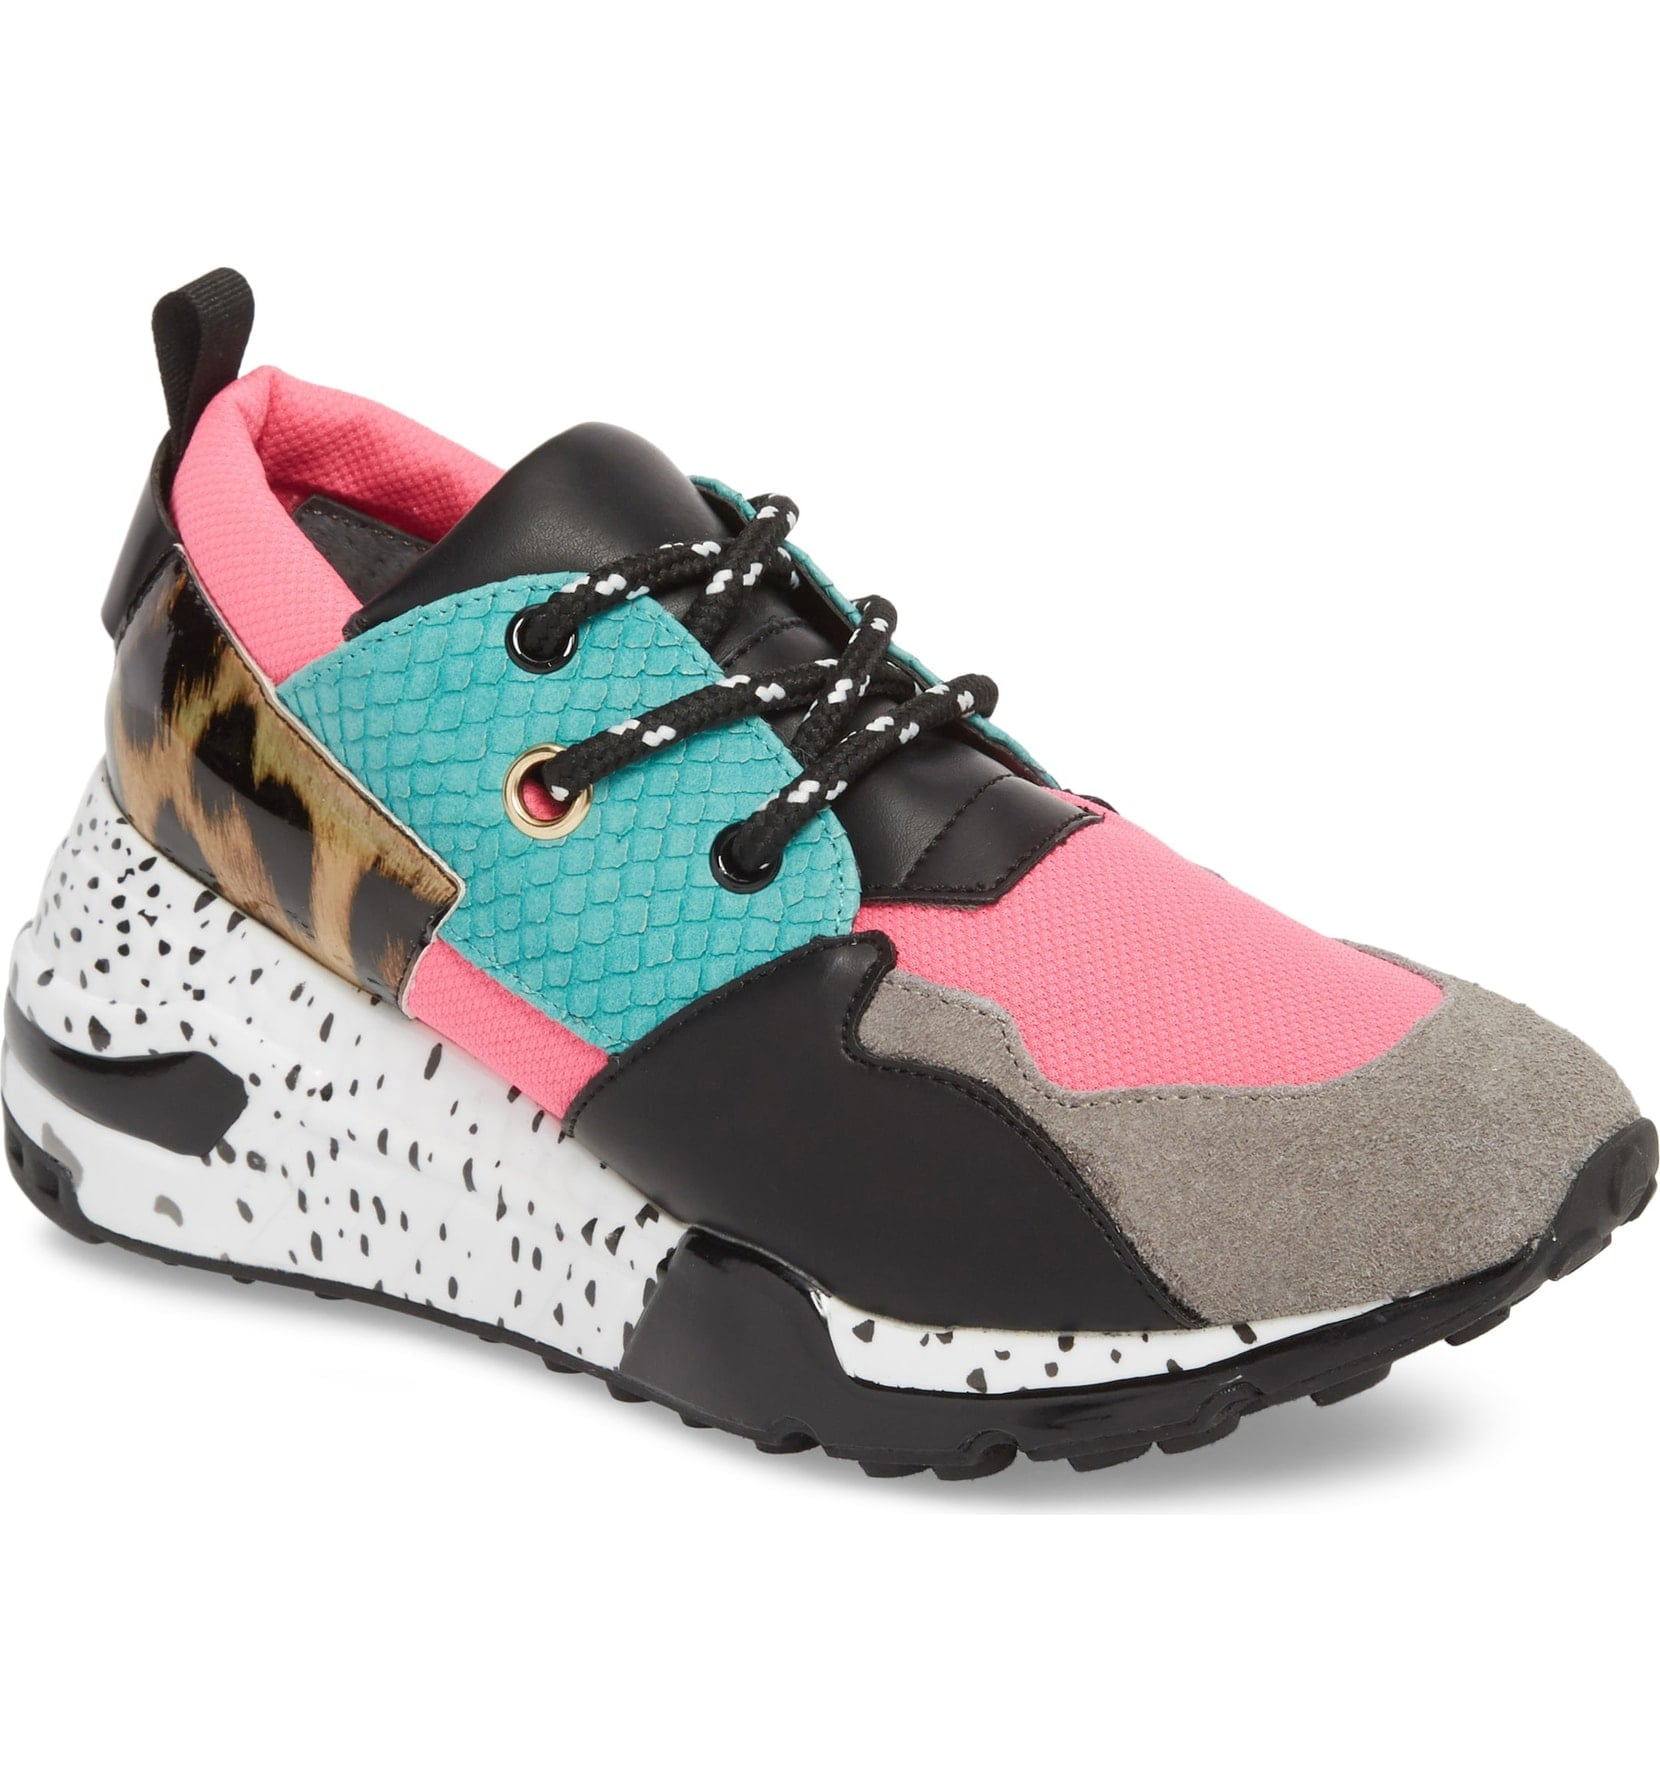 Steve Madden Cliff Sneakers | Taylor